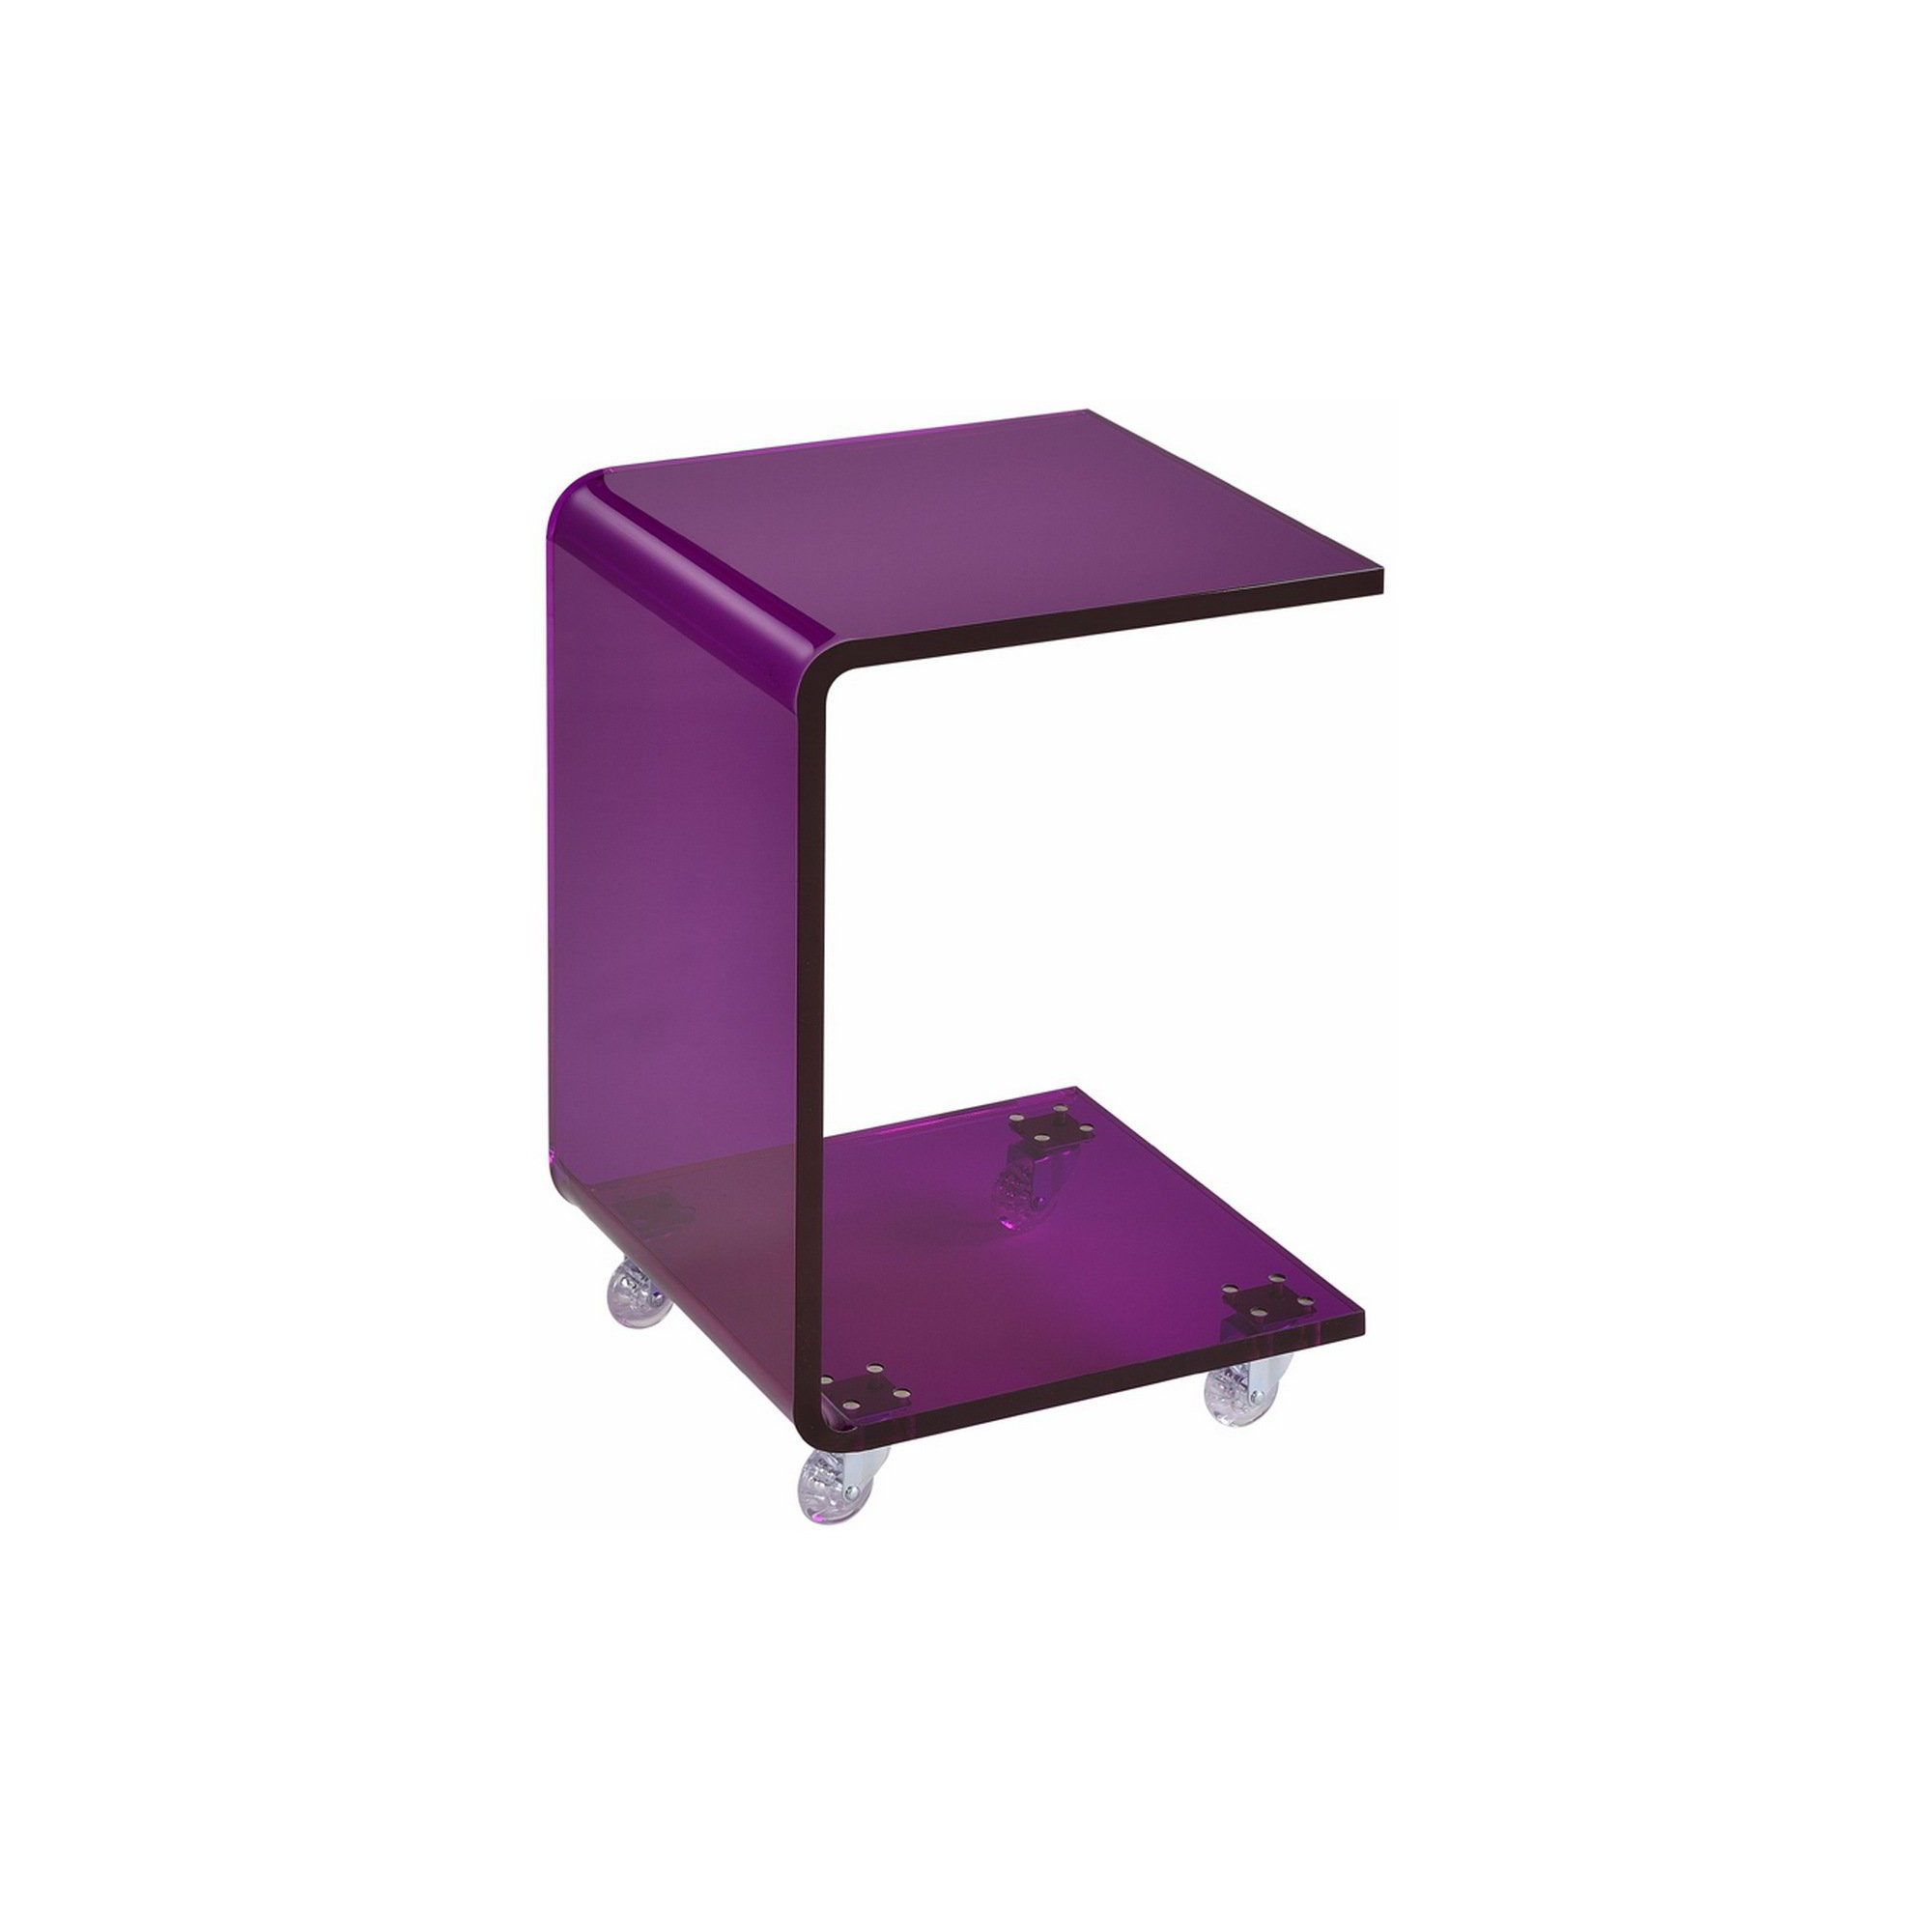 acrylic shape accent table purple products bbq side beach themed lighting black wrought iron coffee west elm knock off ashley sofa grey nightstand beachy chairs target threshold